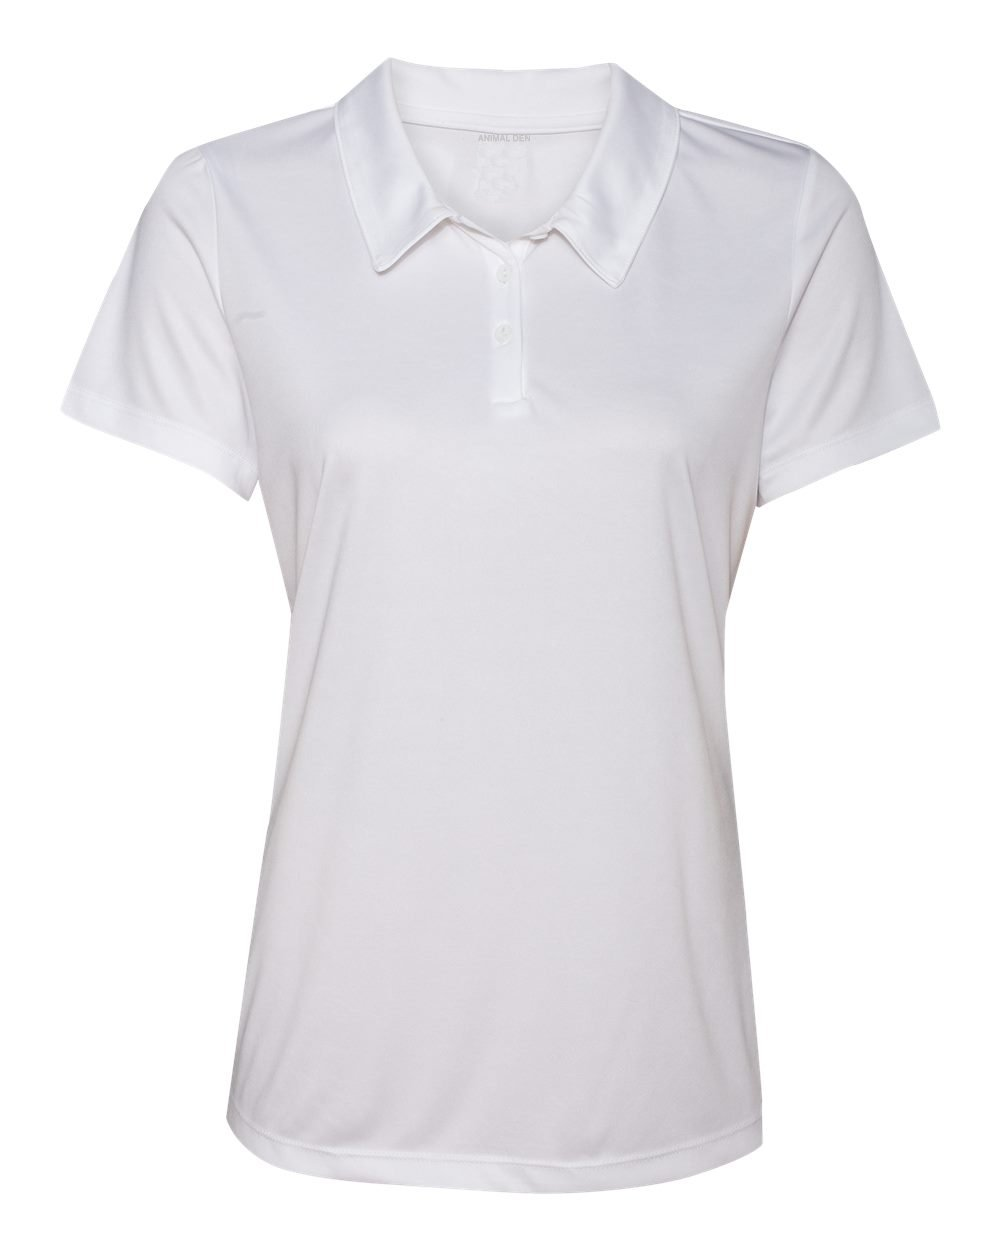 Women's Dry-Fit Golf Polo Shirts 3-Button Golf Polo's in 20 Colors XS-3XL Shirt WHITE-XS